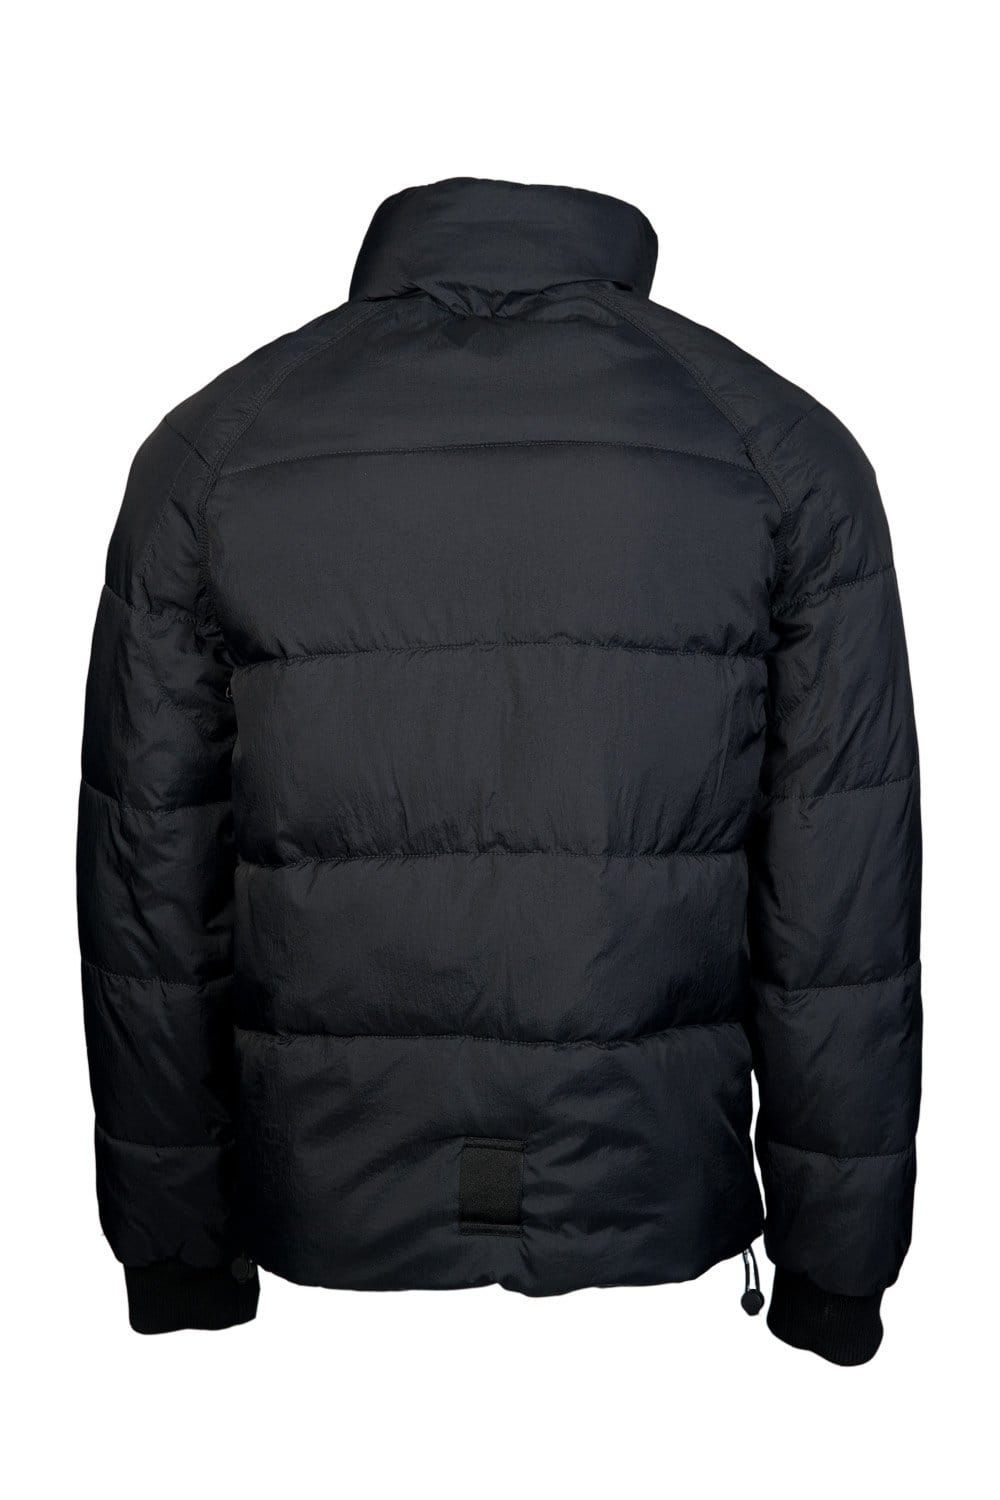 Armani Jeans Puffer Winter Jacket in Black and Blue